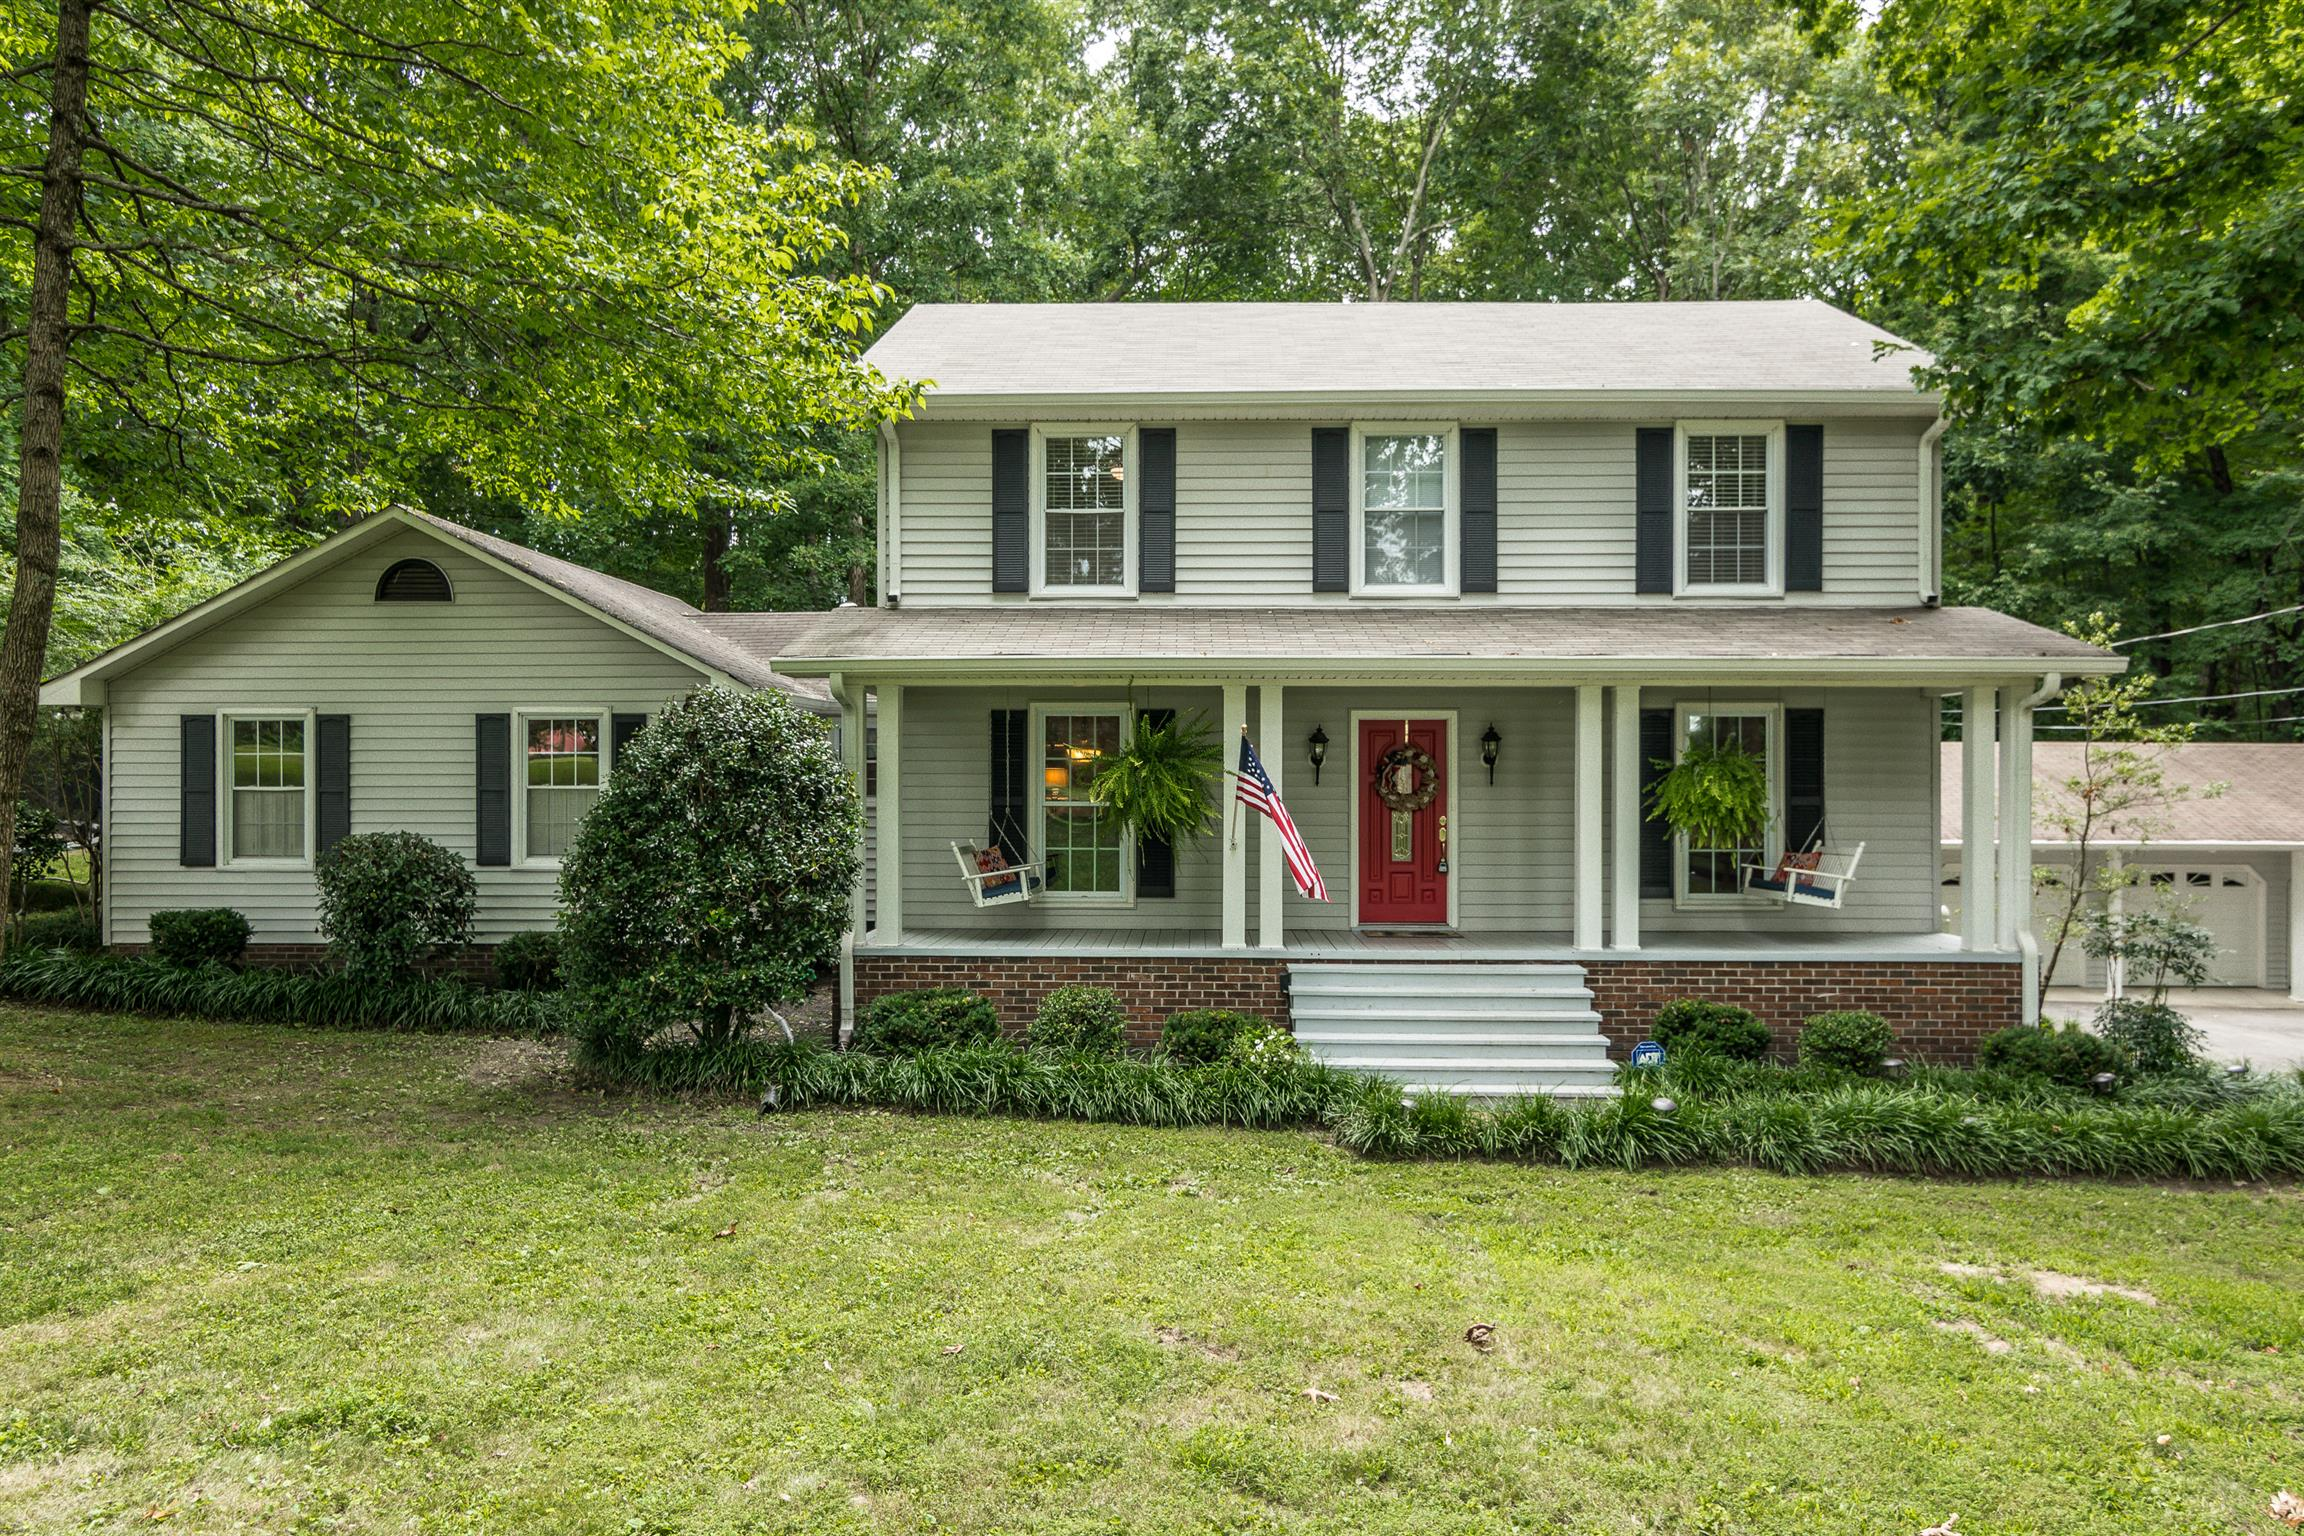 1880 Woodruff Ave, Greenbrier, TN 37073 - Greenbrier, TN real estate listing